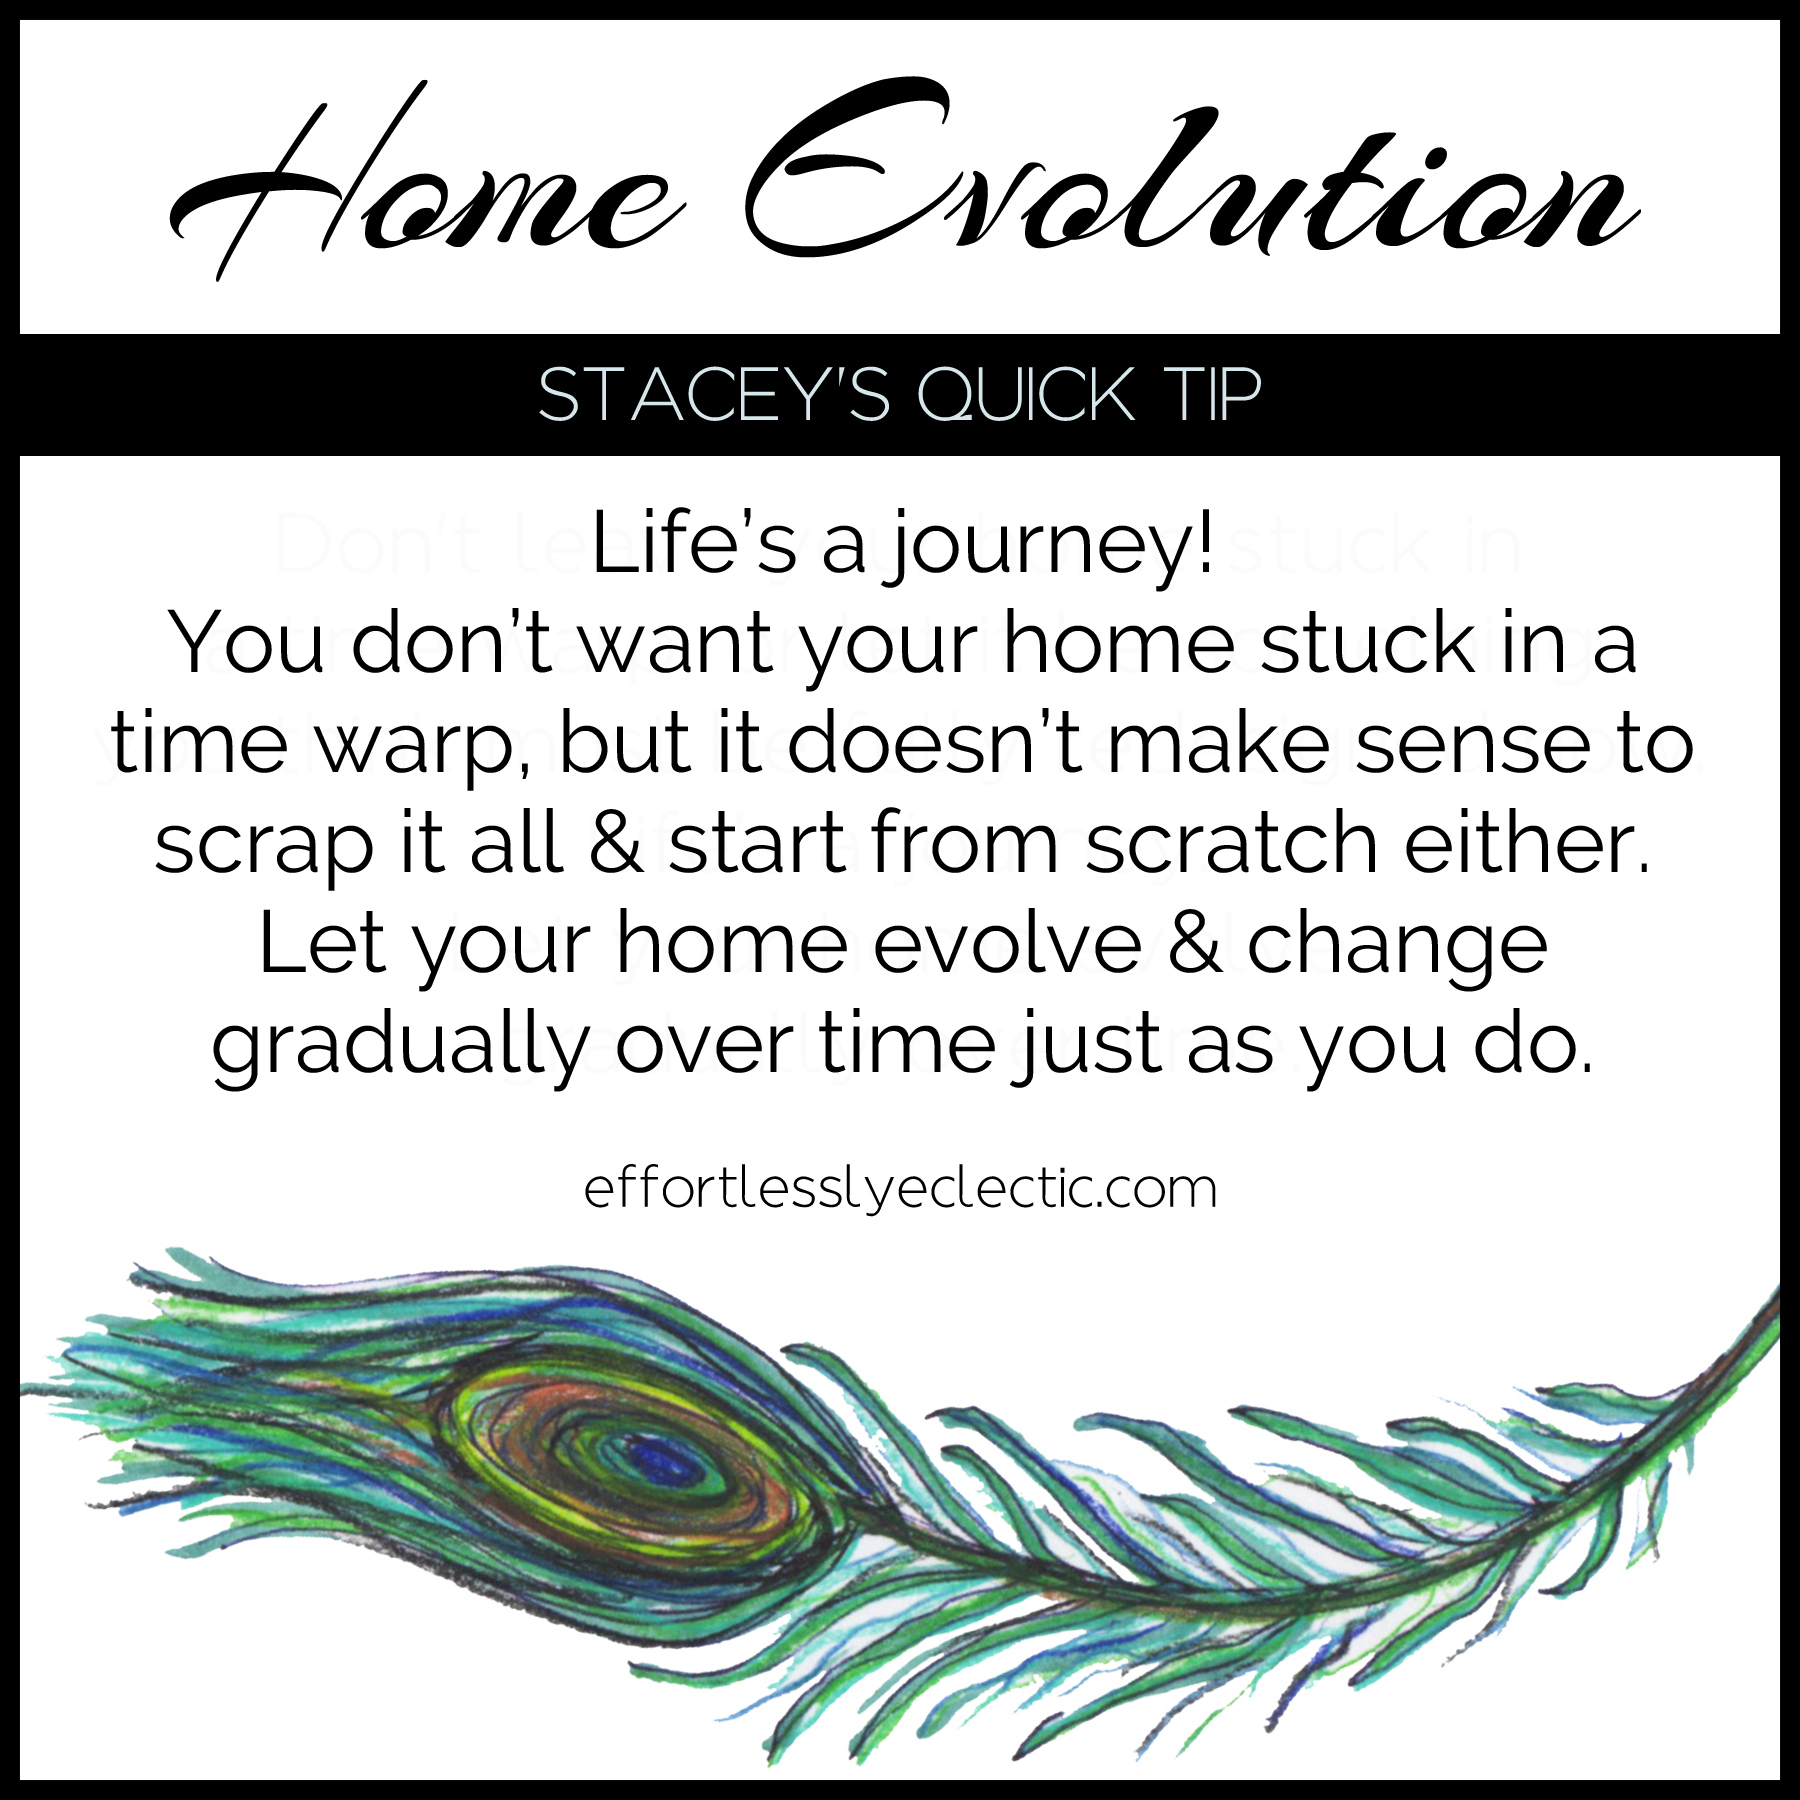 Home Evolution - A home decorating tip about letting your home change slowly over time